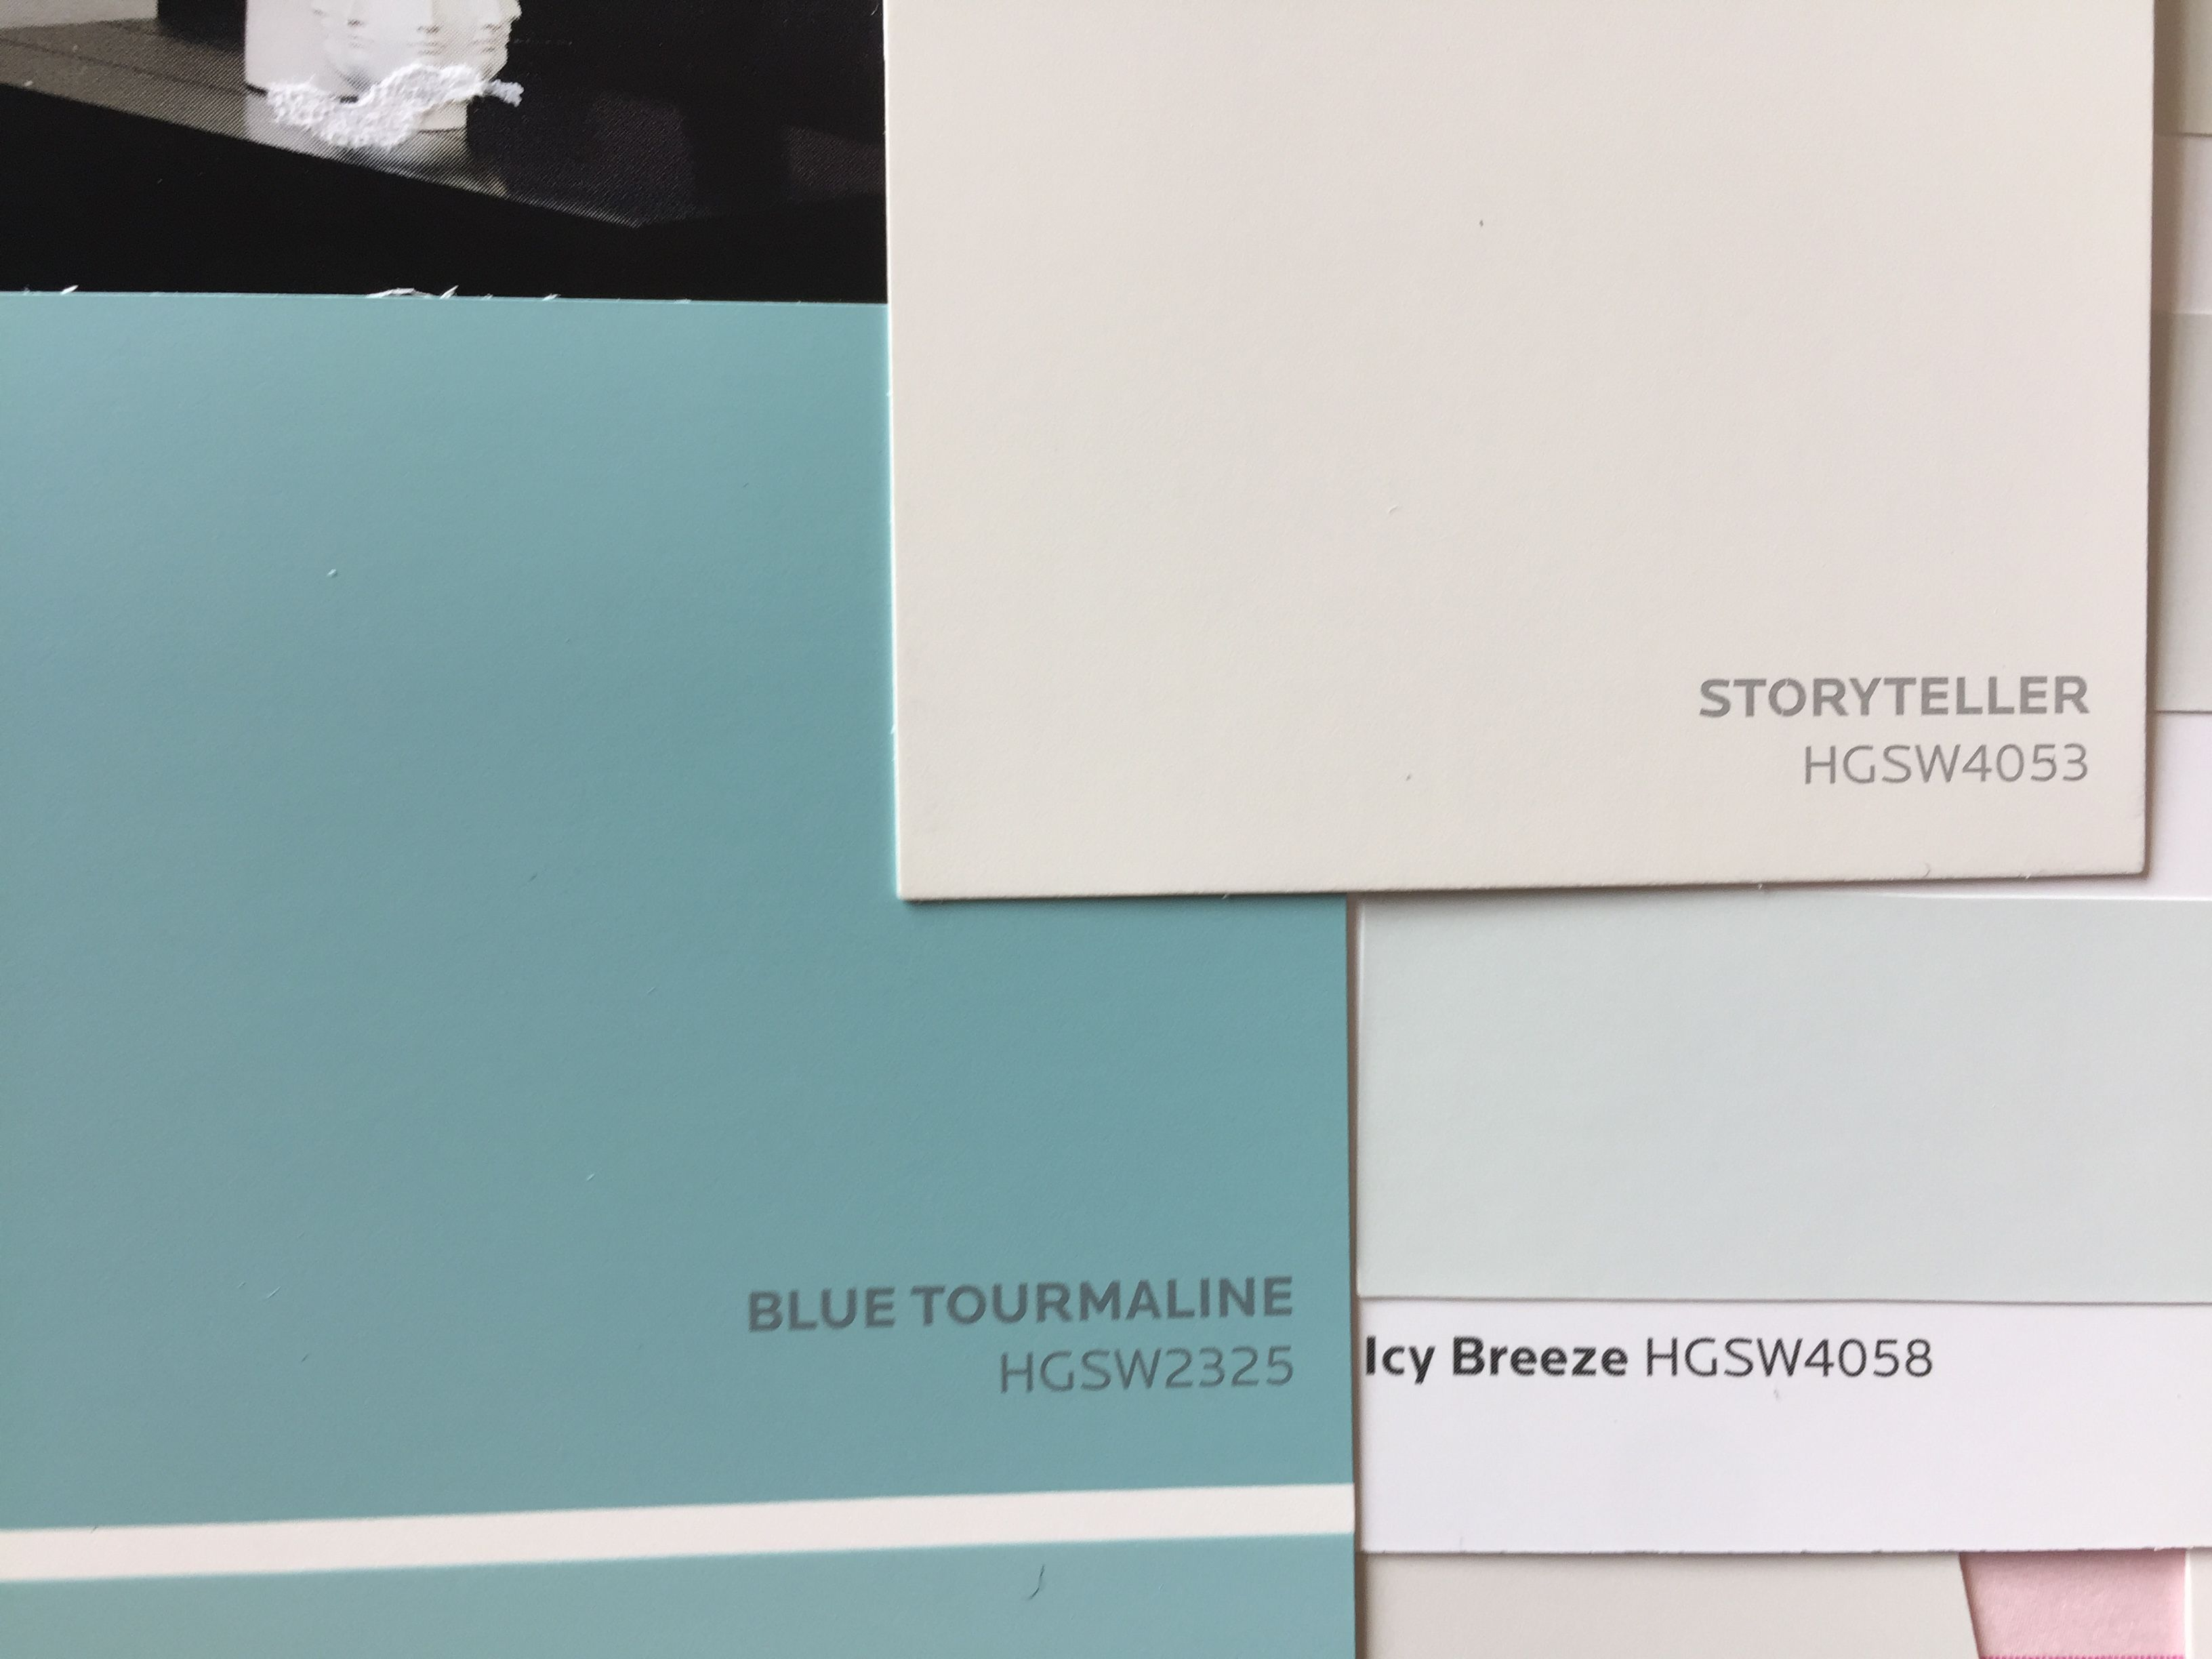 Living Room Paint Colors Storyteller Sherwin Williams Blue Tourmaline Sherwin Williams Paint Colors For Living Room Paint Colors For Home Paint Colors